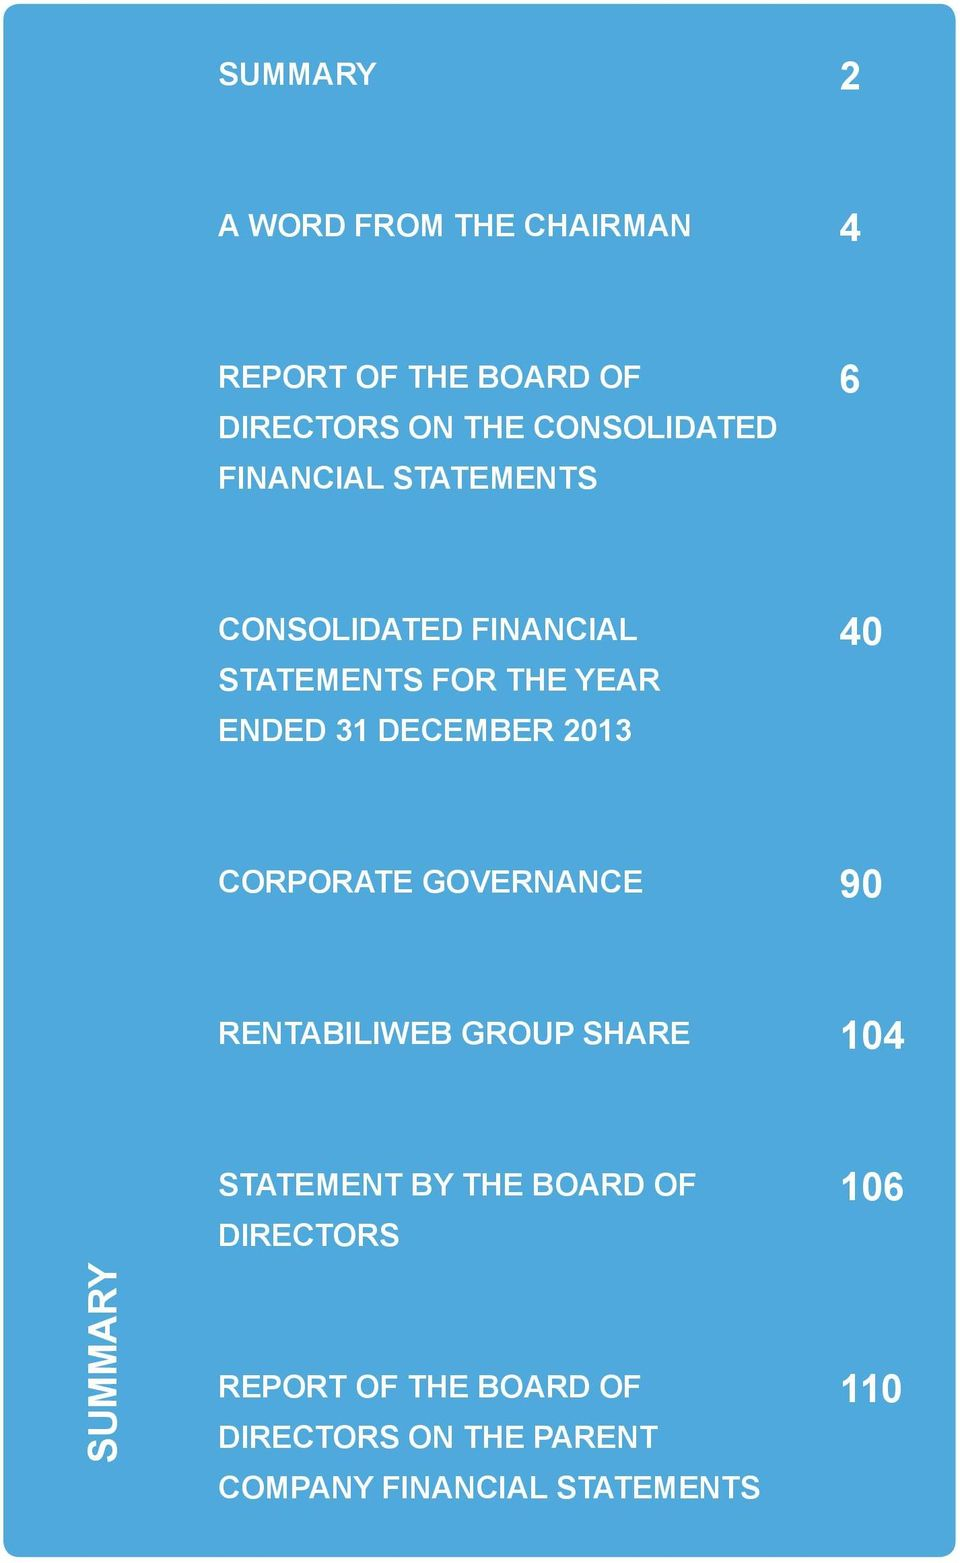 213 4 CORPORATE GOVERNANCE 9 RENTABILIWEB GROUP SHARE 14 STATEMENT BY THE BOARD OF